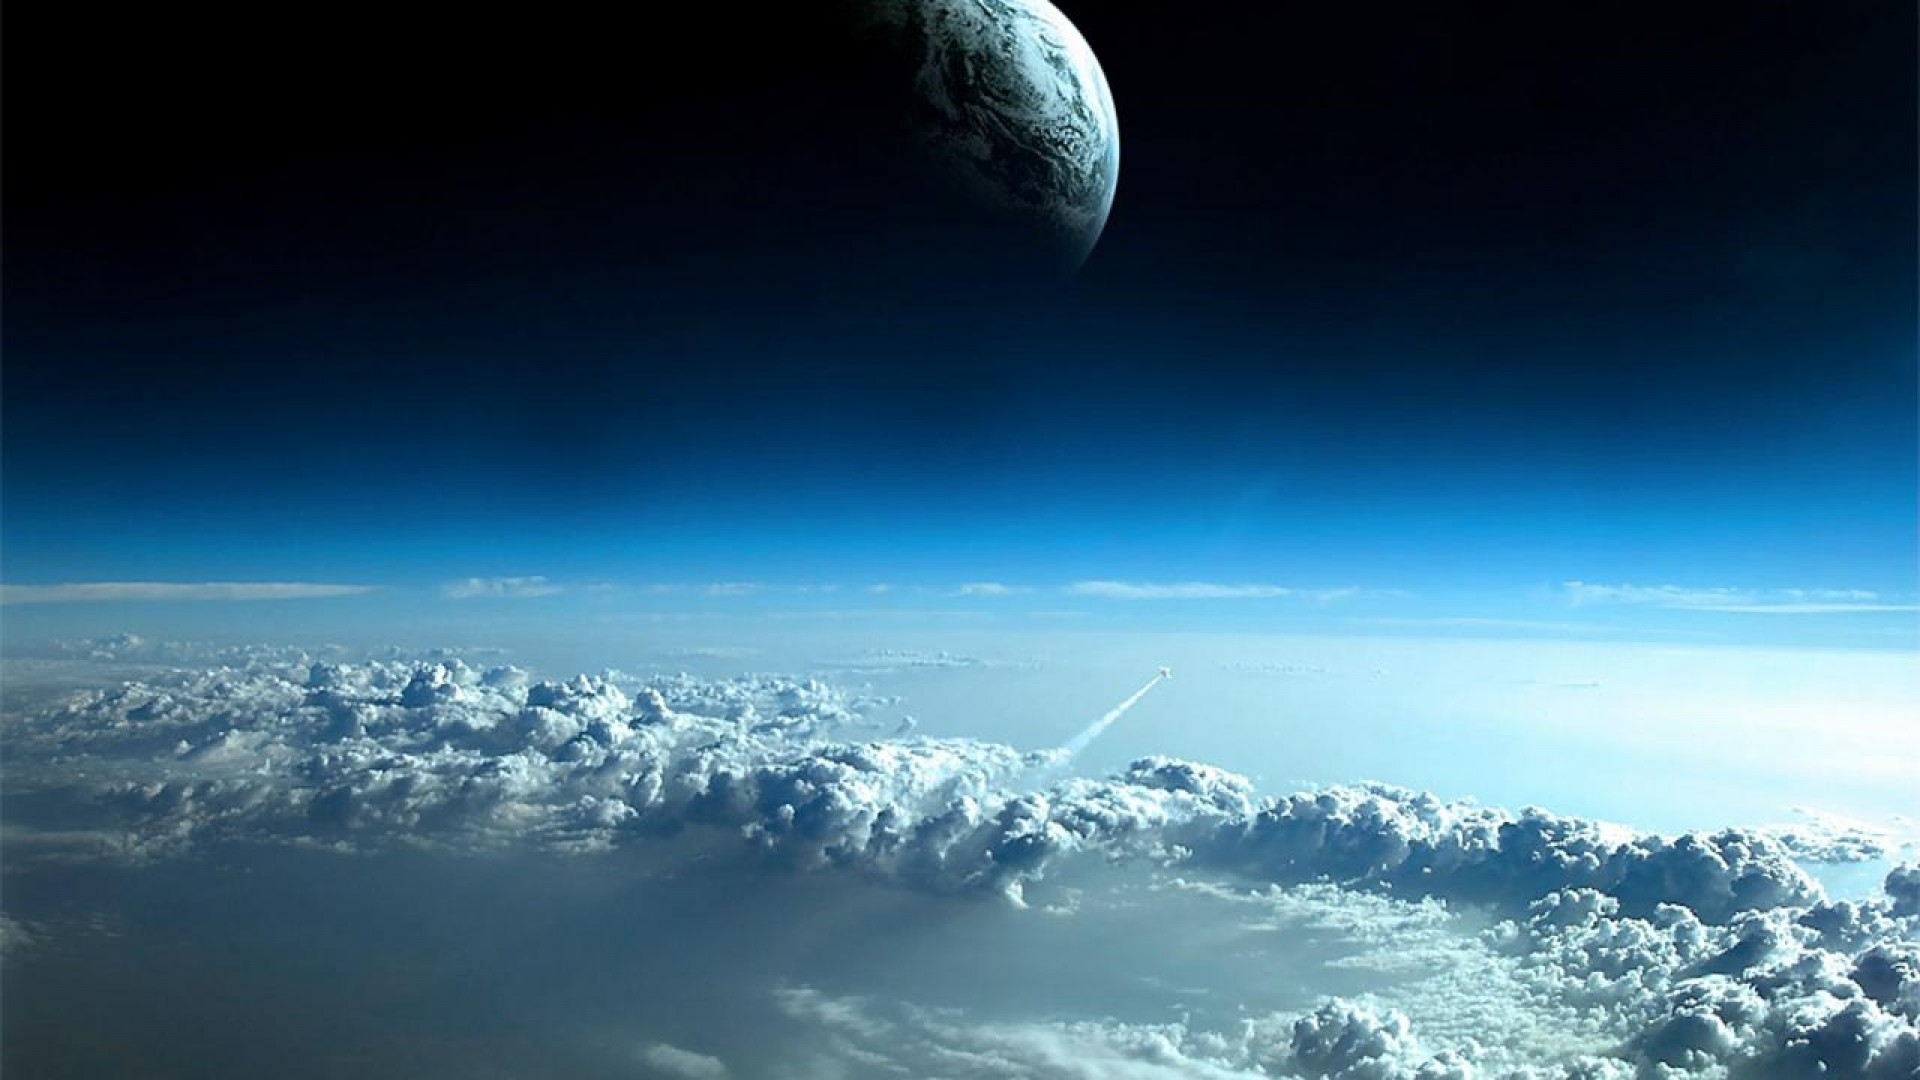 10 Latest 1080p Hd Space Wallpapers Full Hd 1080p For Pc